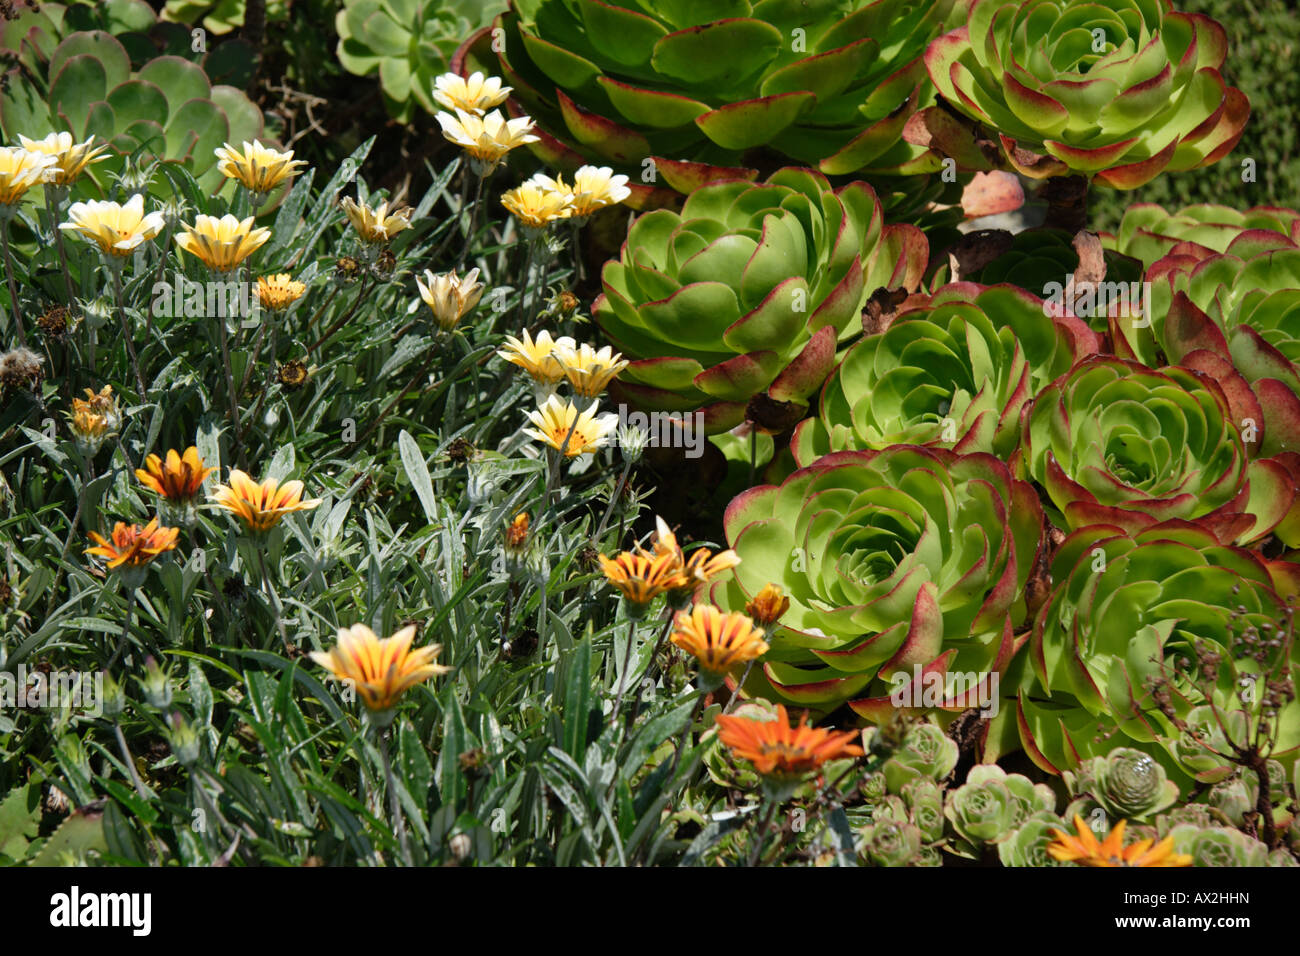 Uk Tropical Plants Part - 38: Stock Photo - Sub Tropical Plants In The Gardens Of The Famous Out Door  Minack Theatre, South, Cornwall, UK